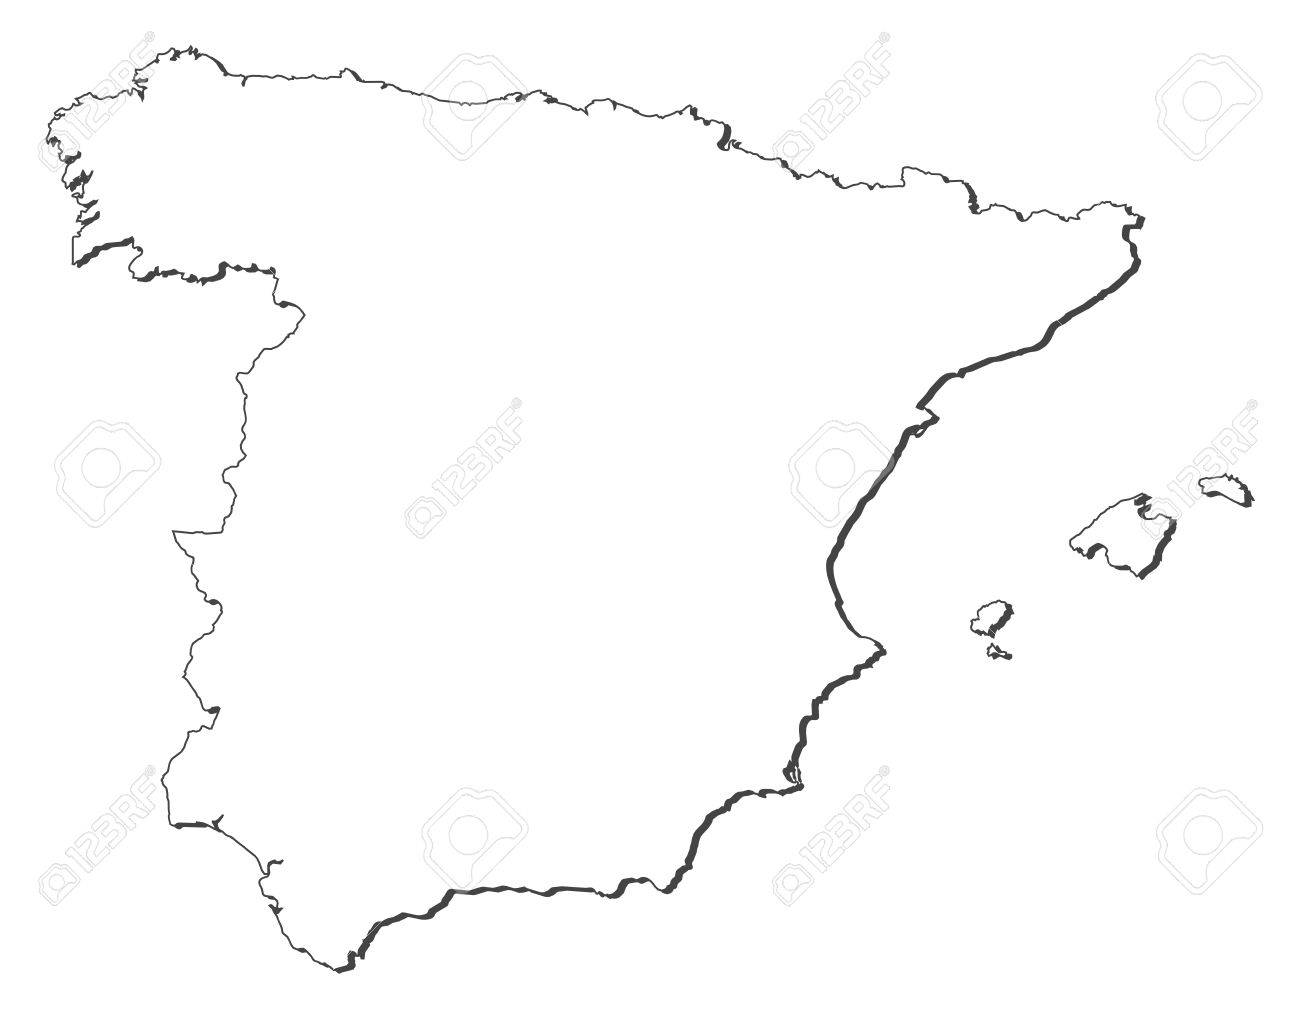 Political Map Of Spain With The Several Regions. Royalty Free ...